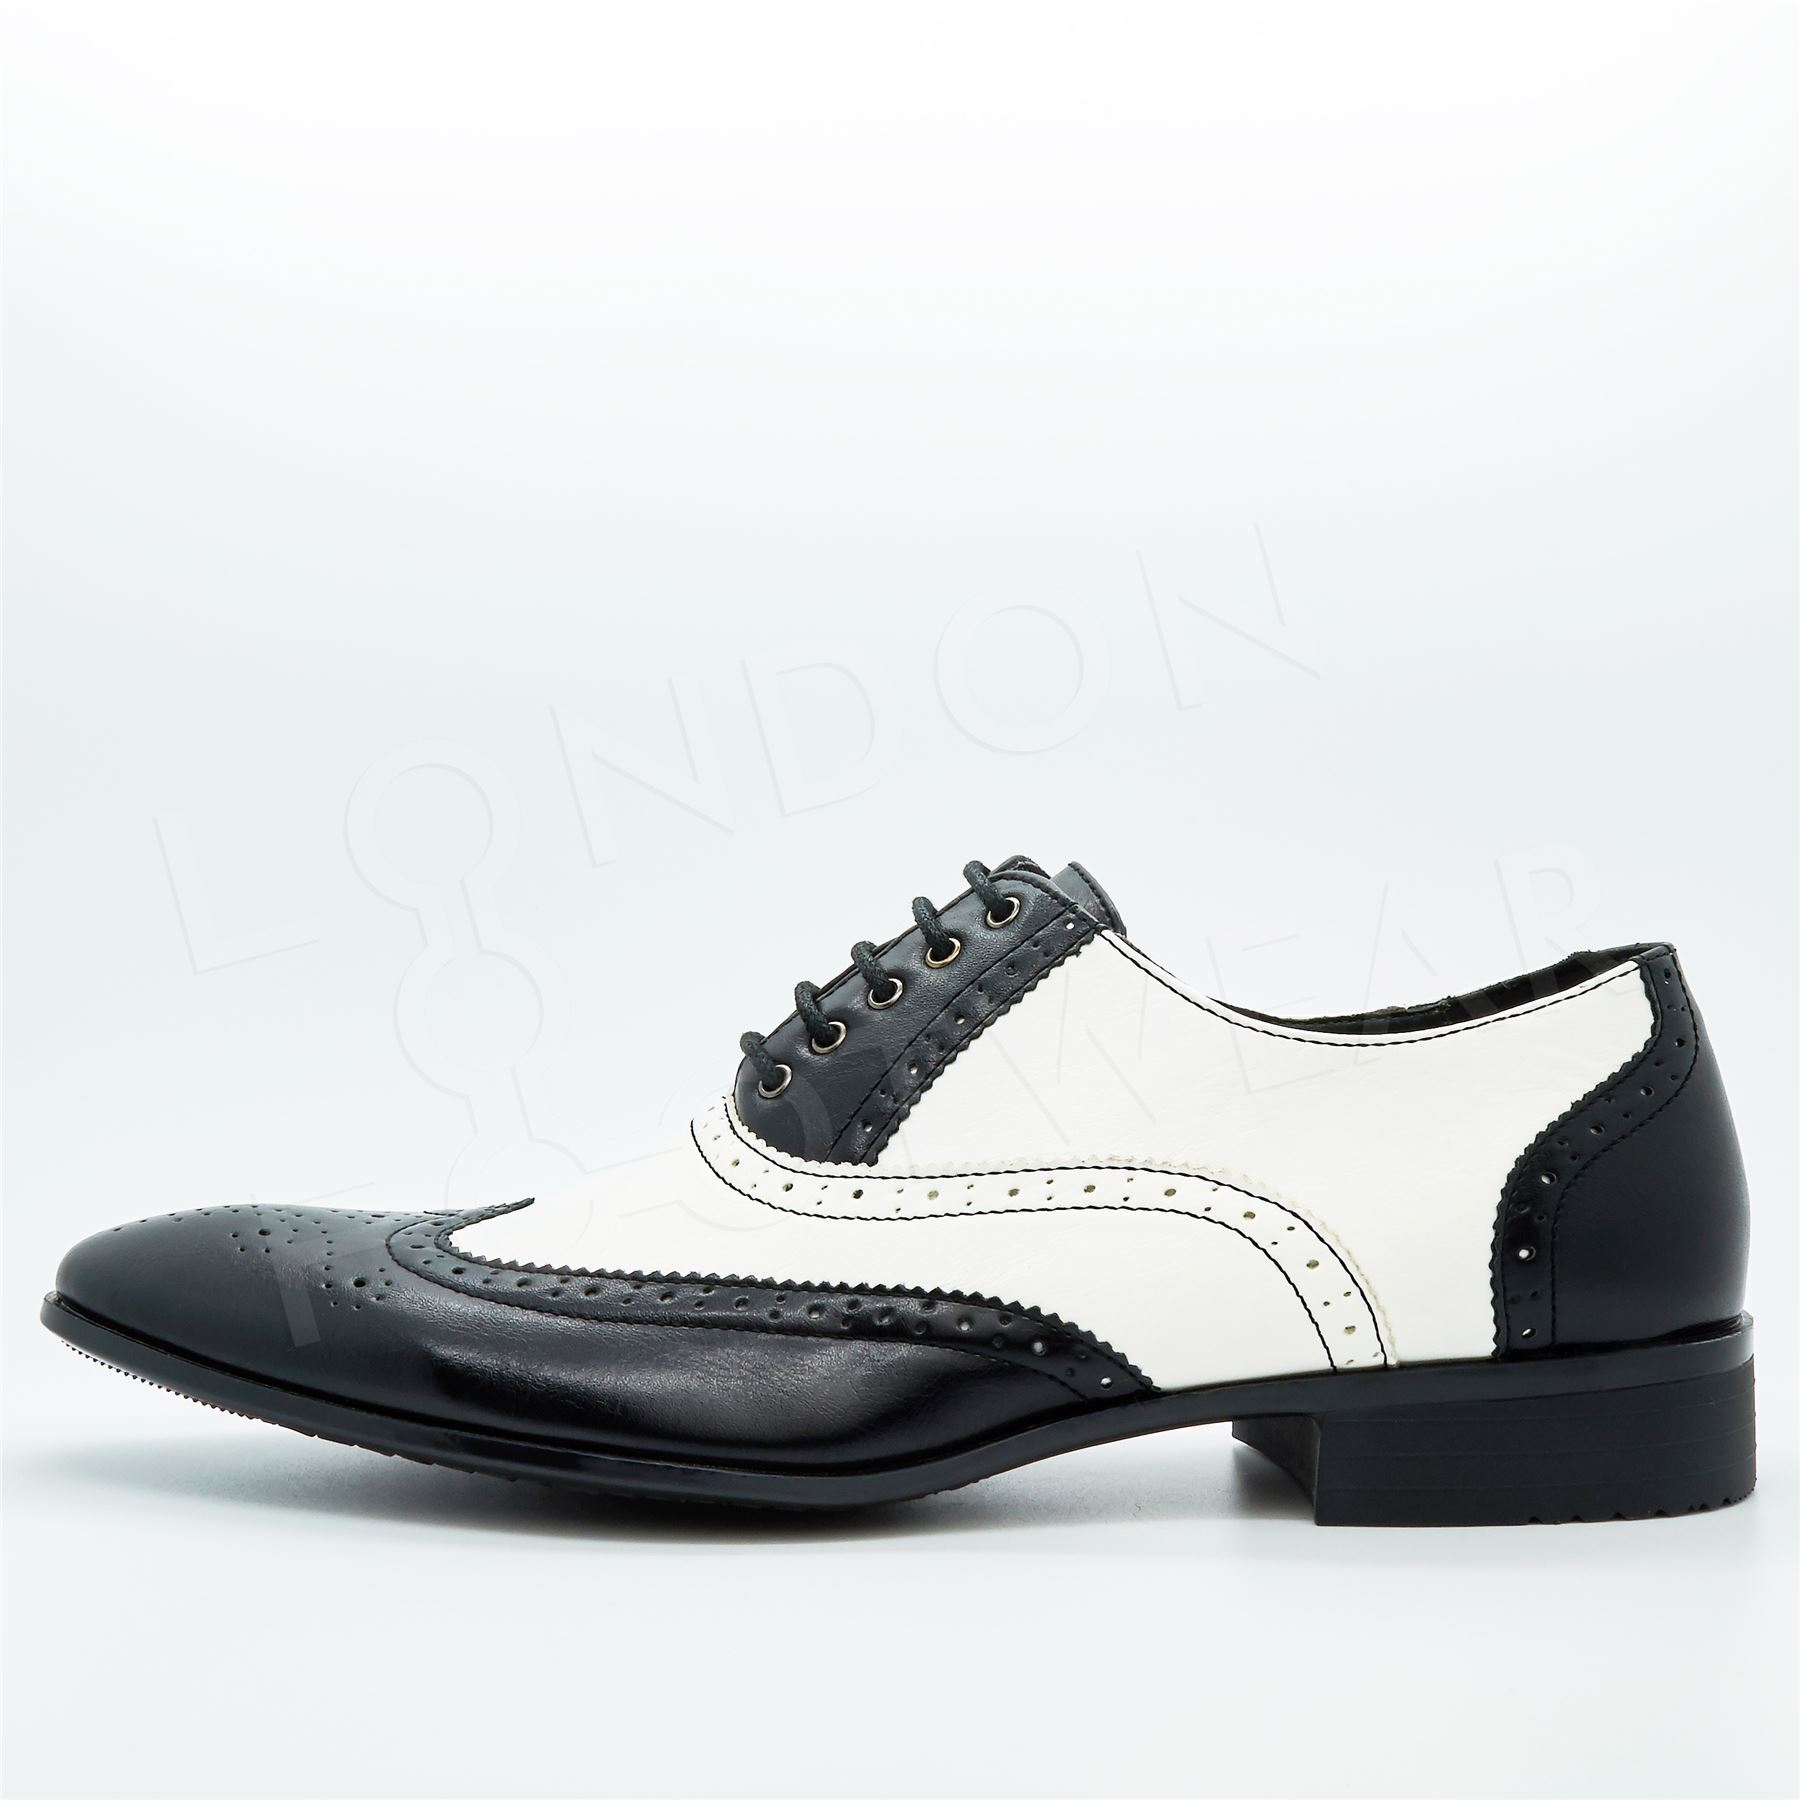 new mens two tone oxford brogues lace up formal gangster